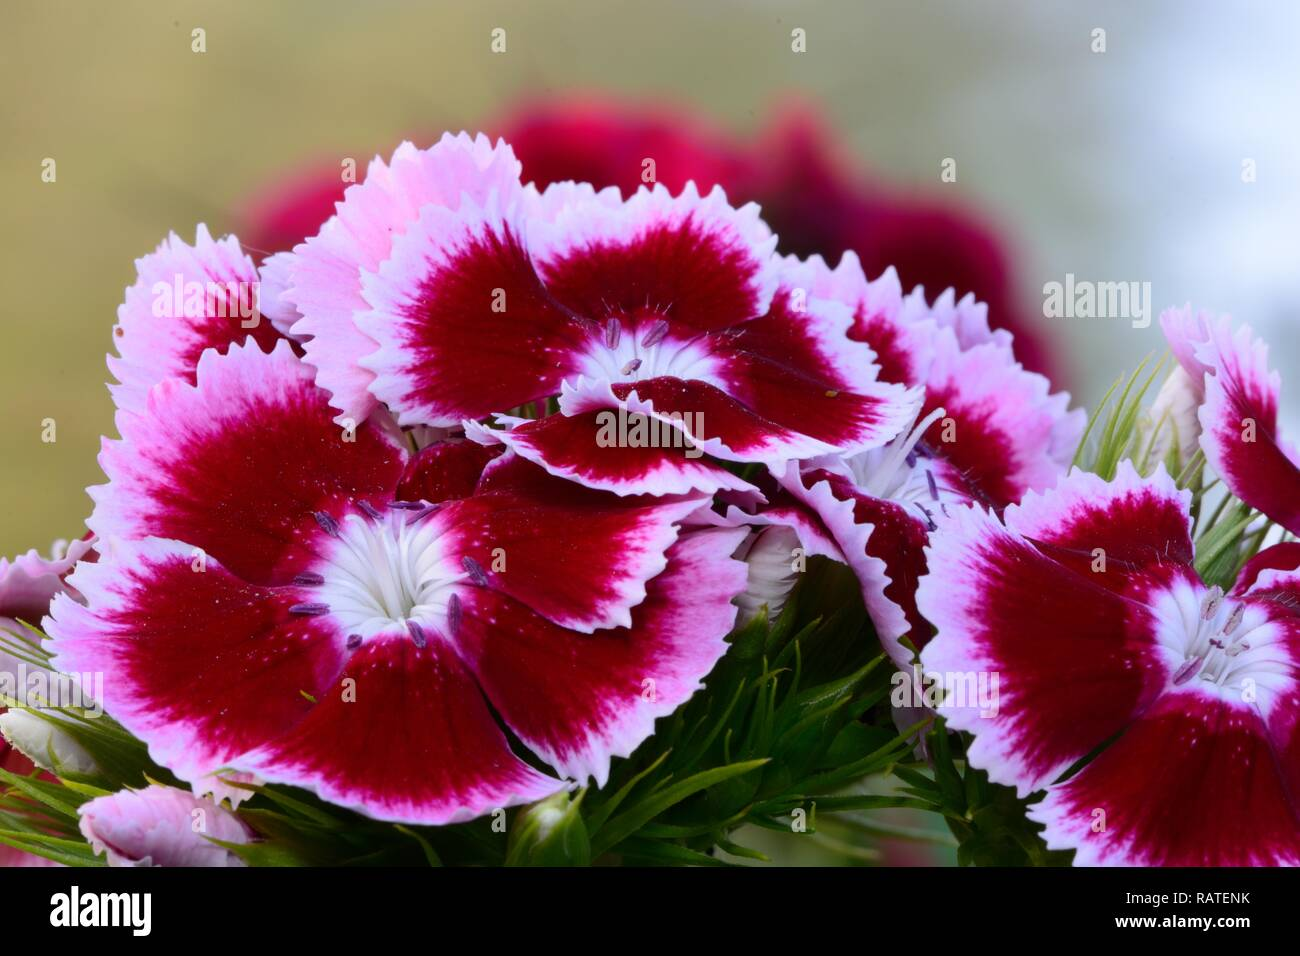 Close up of red and white sweet William flowers in bloom - Stock Image